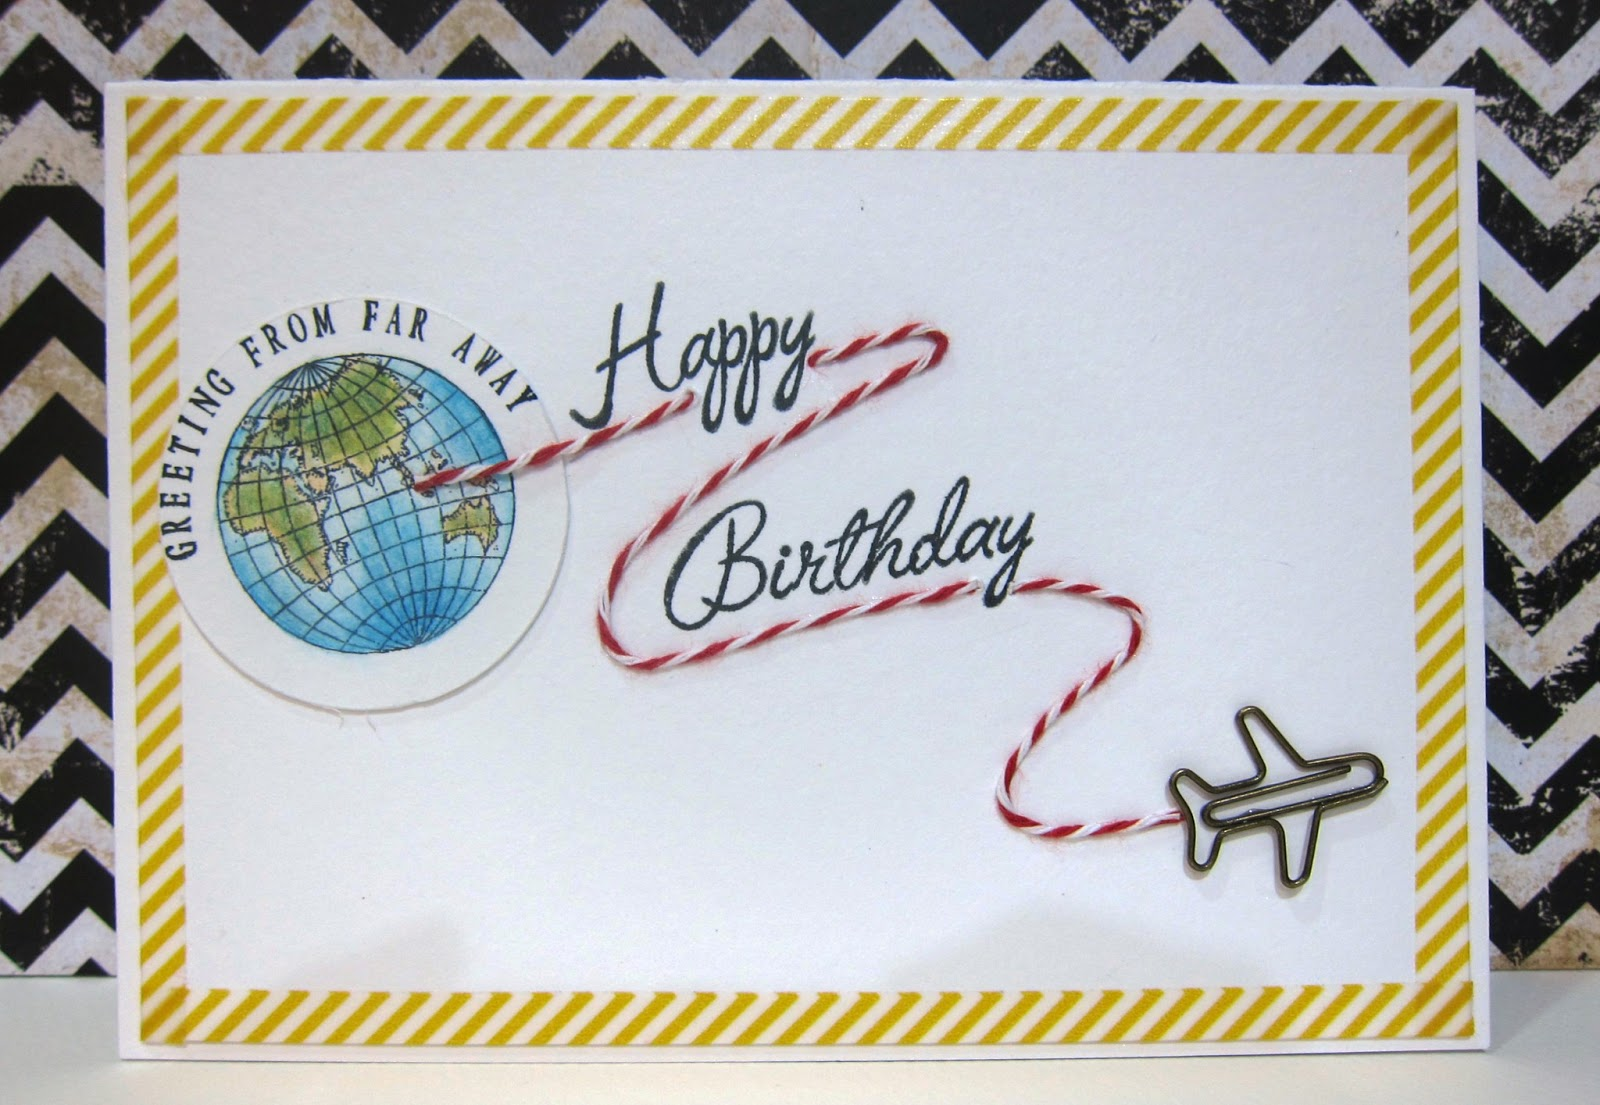 Creatif Journey Birthday Greeting From Far Away